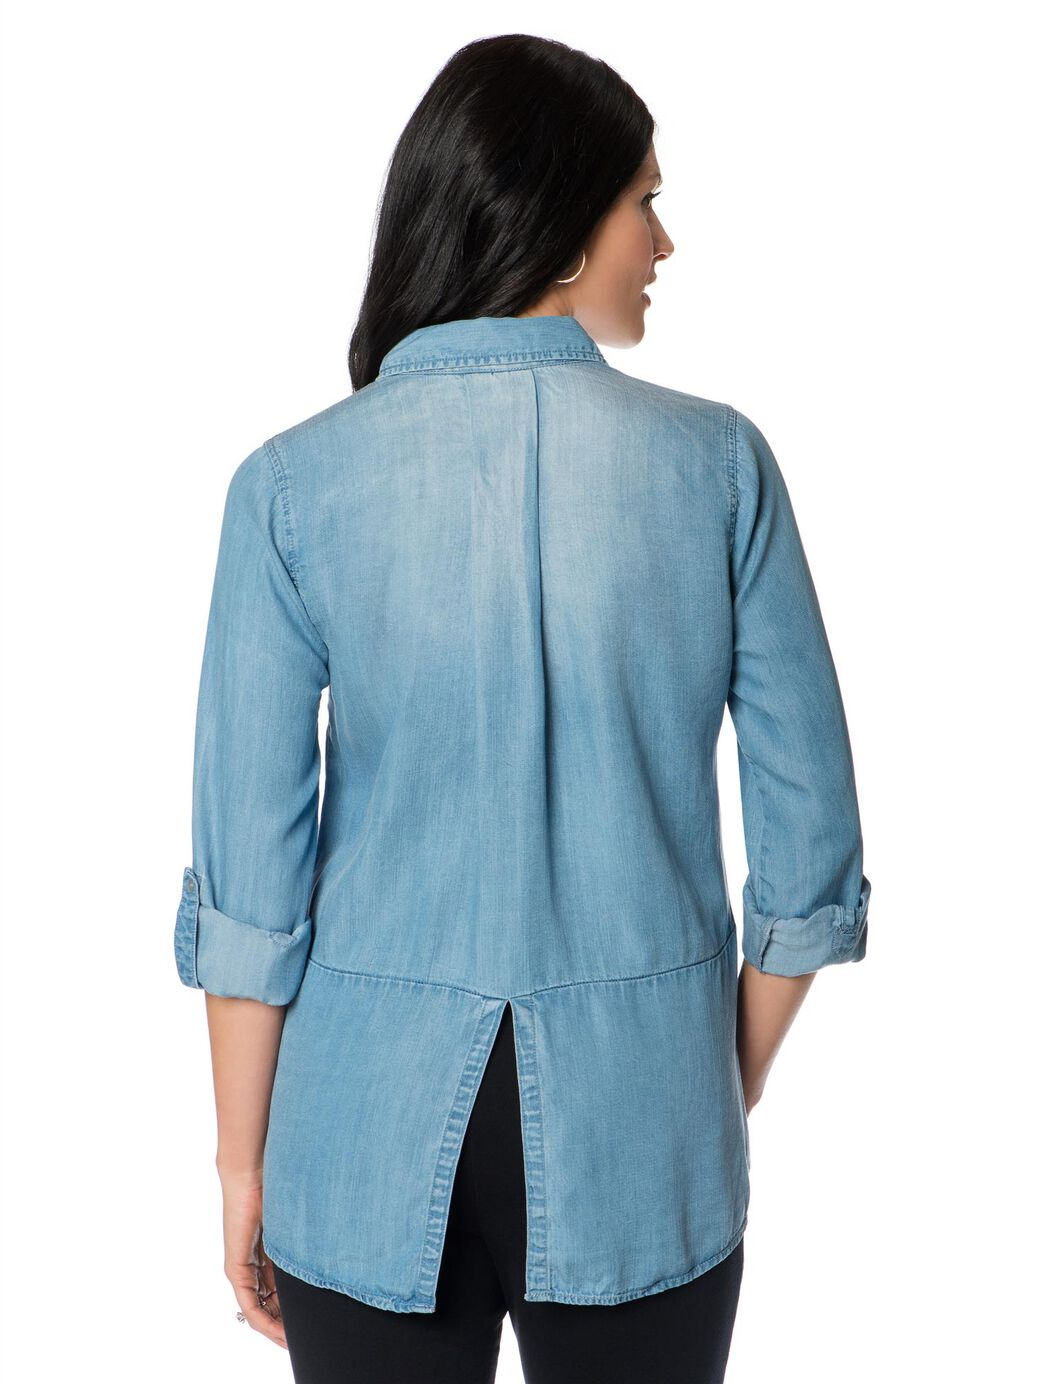 Wendy Bellissimo Light Chambray Maternity Shirt